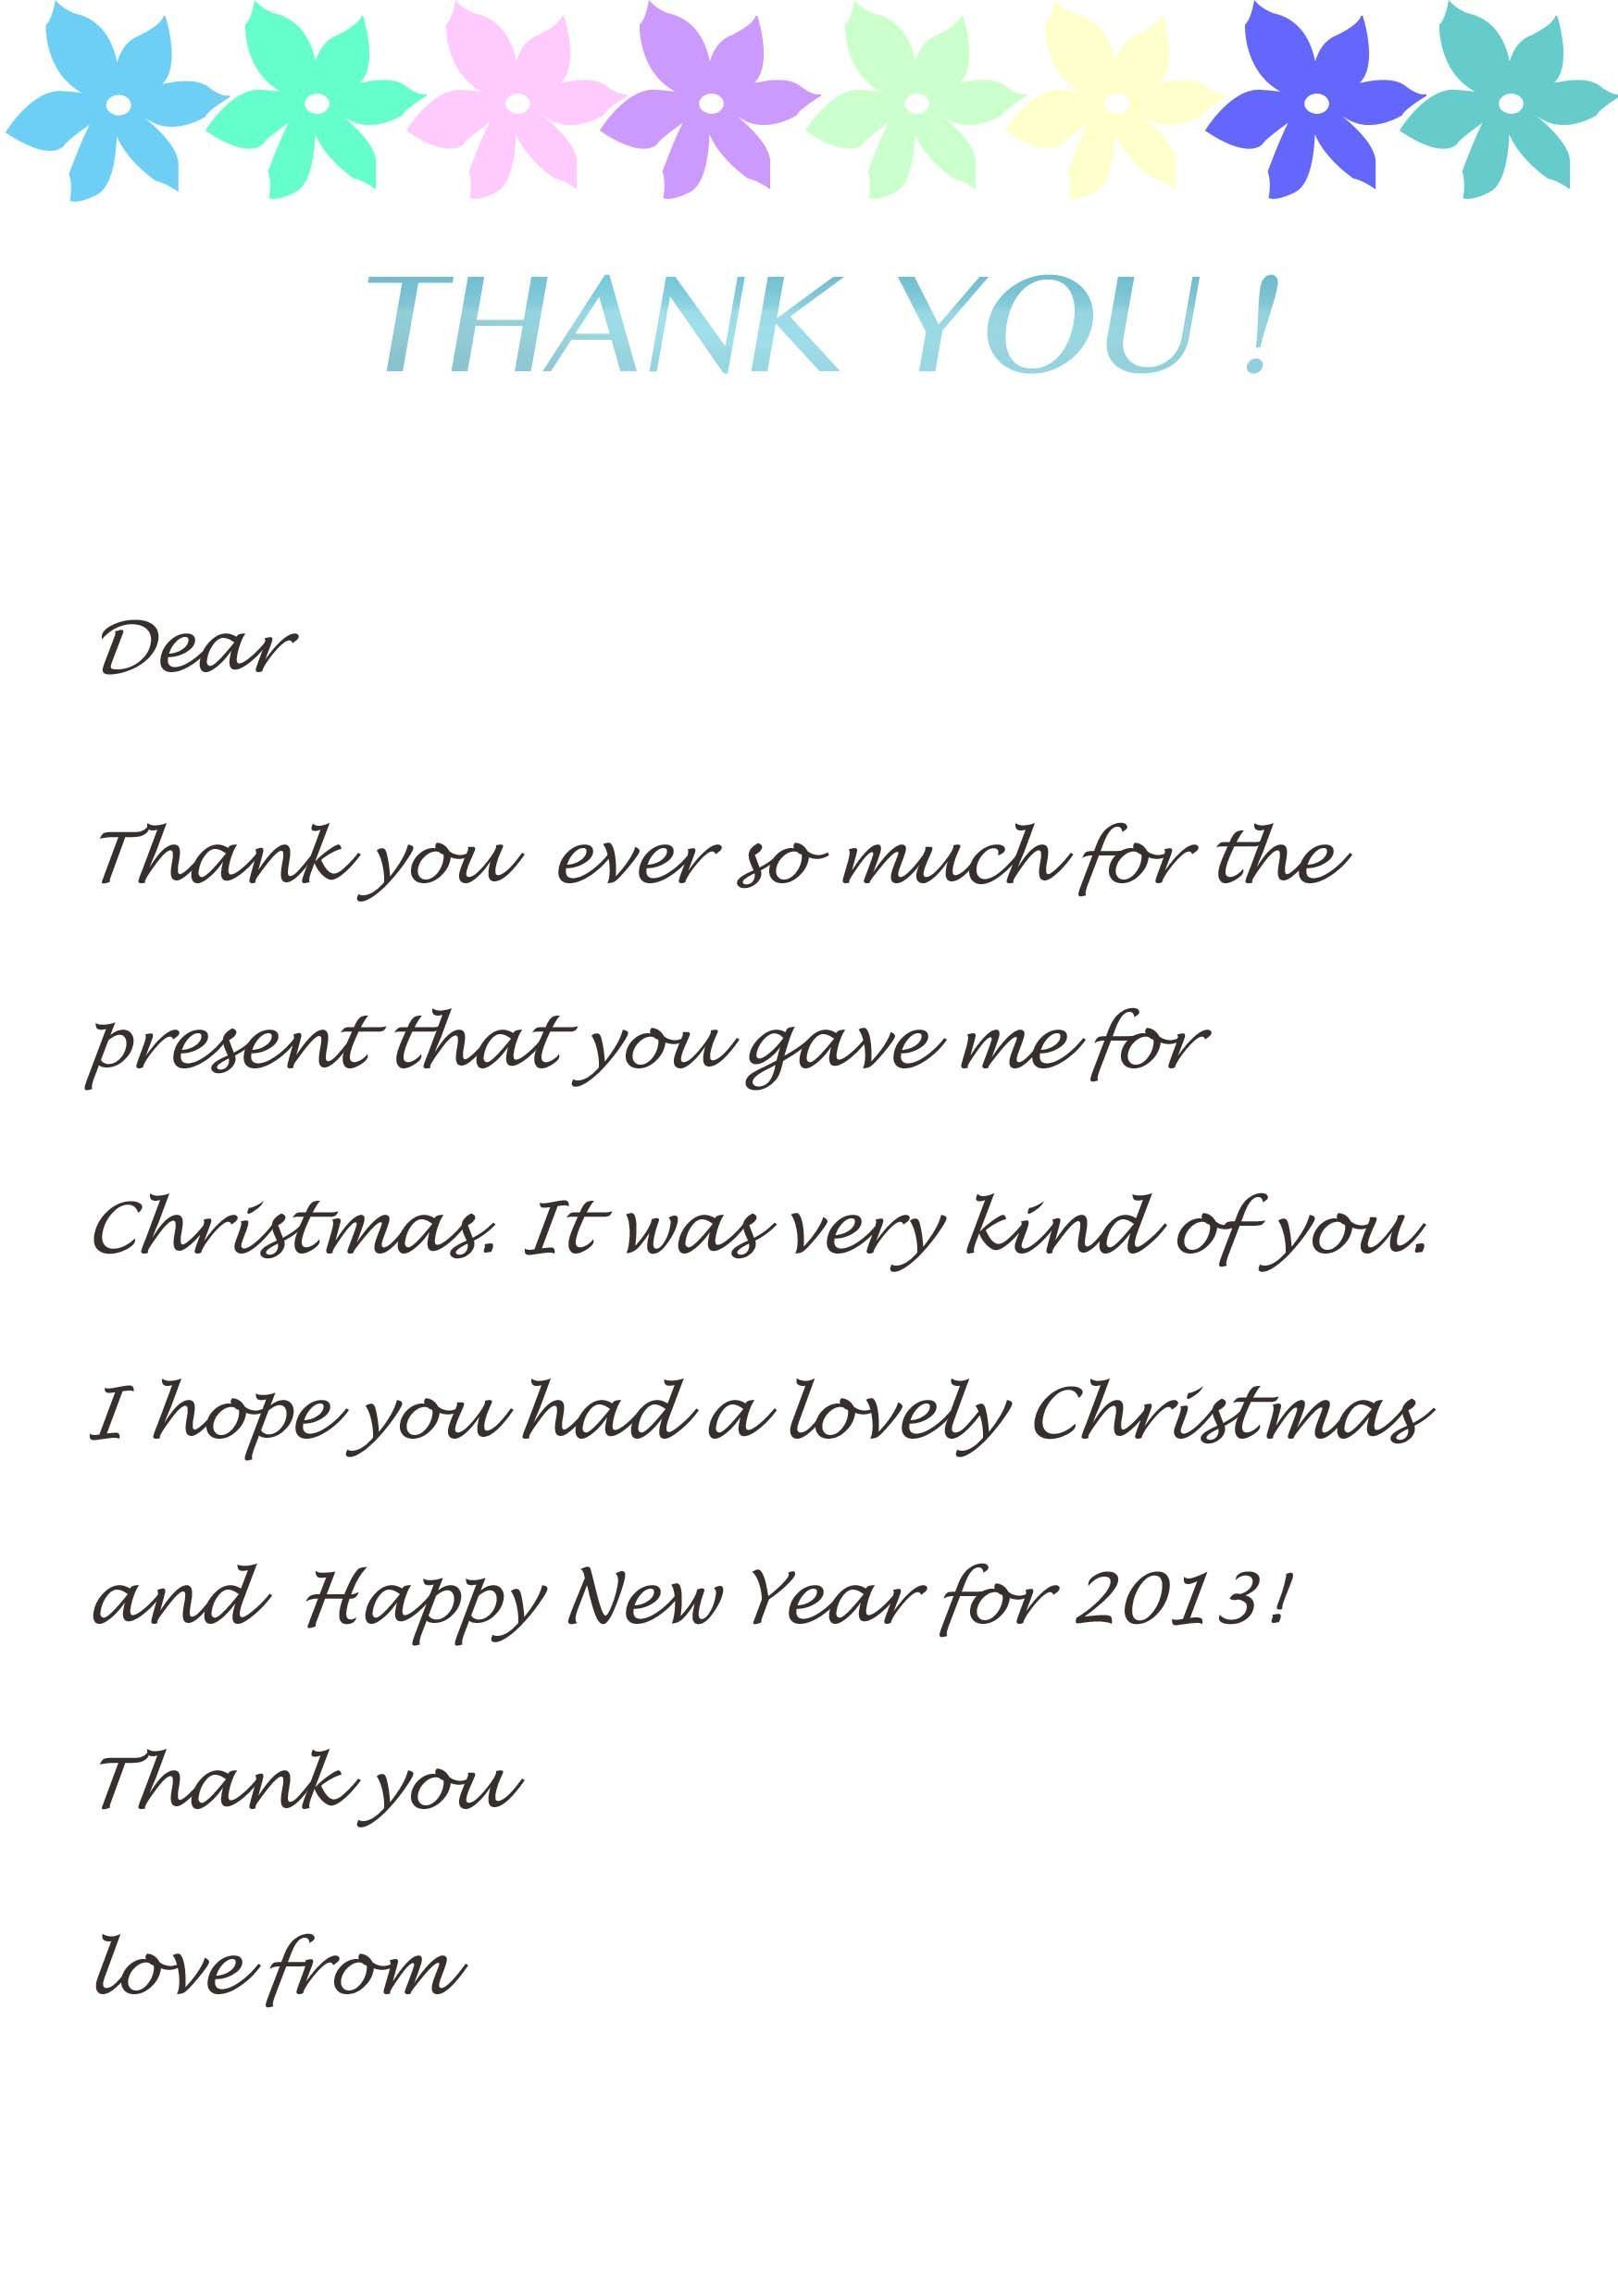 Thank You Letter Format For Kids Image Collections  Letter Format